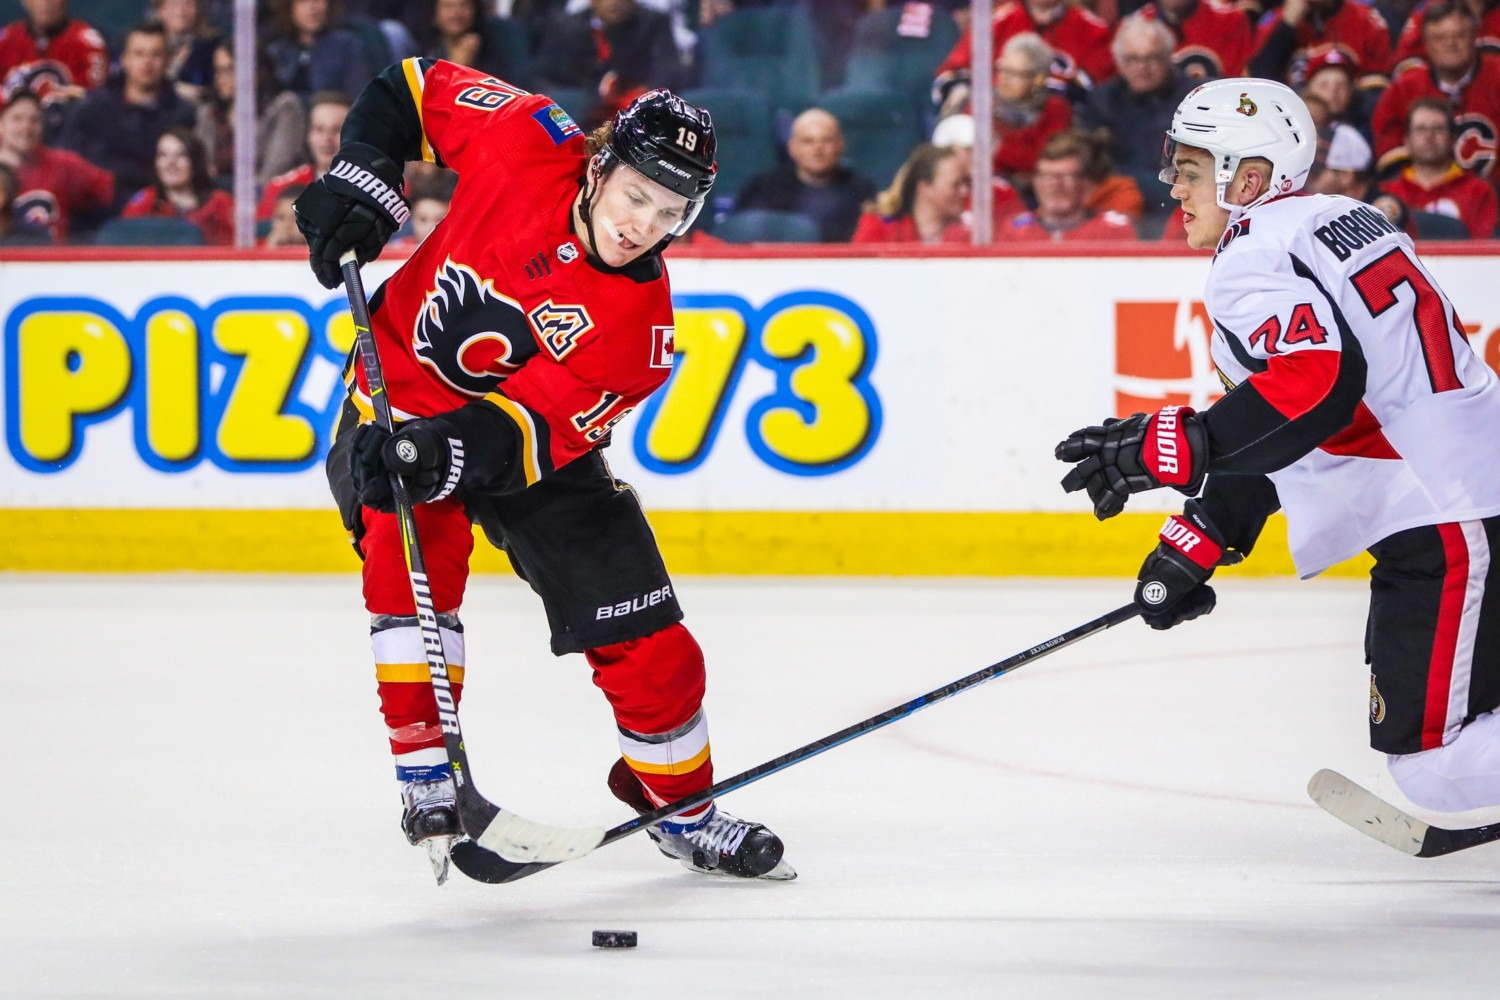 Could Matthew Tkachuk become the highest paid Calgary Flames player?